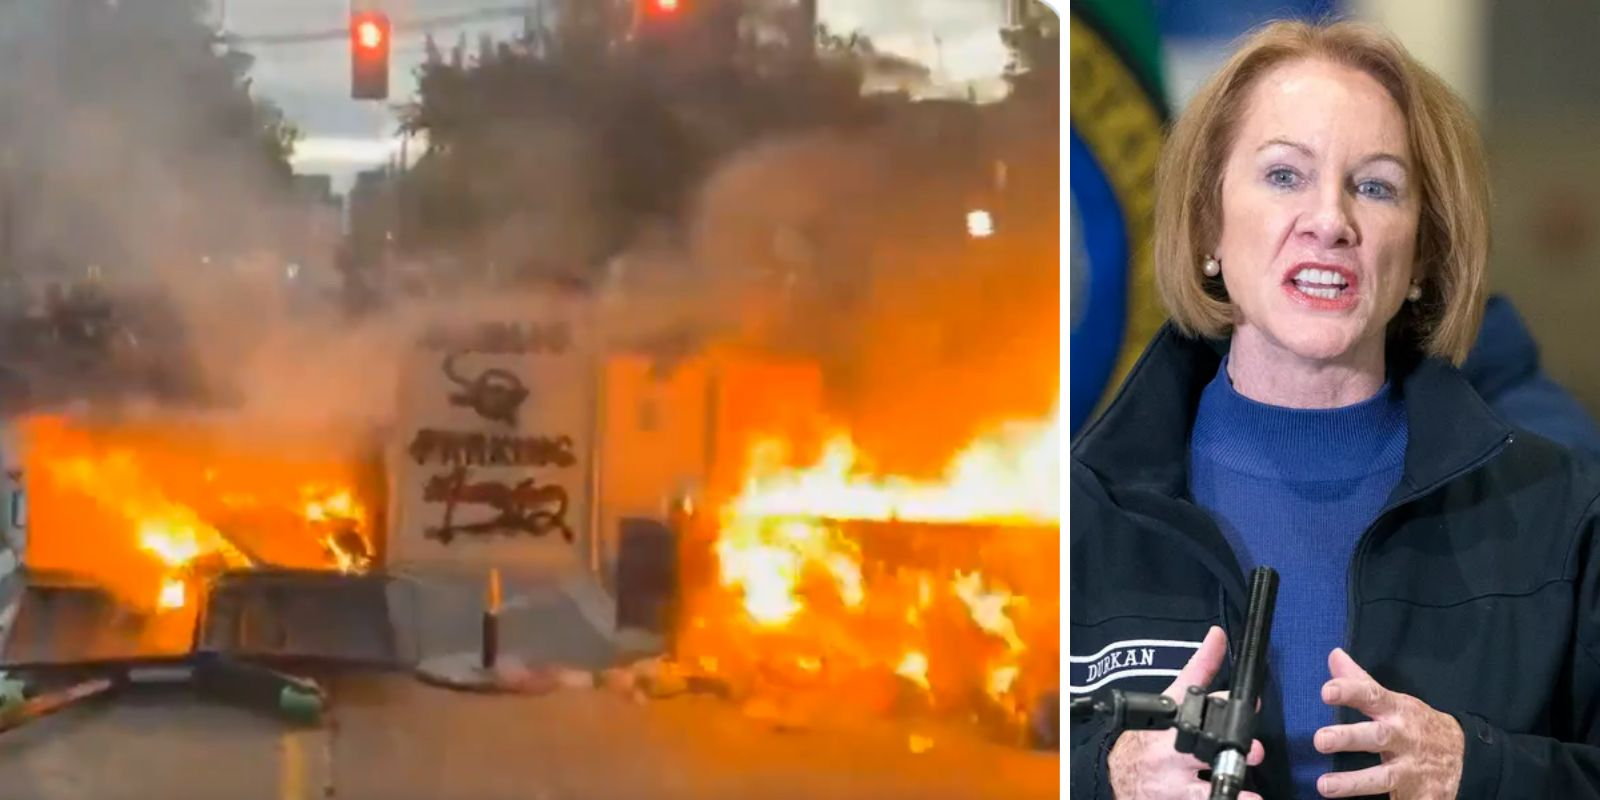 Lawless Seattle sees several injured in illegal car races as defunded police unable to stop unrest